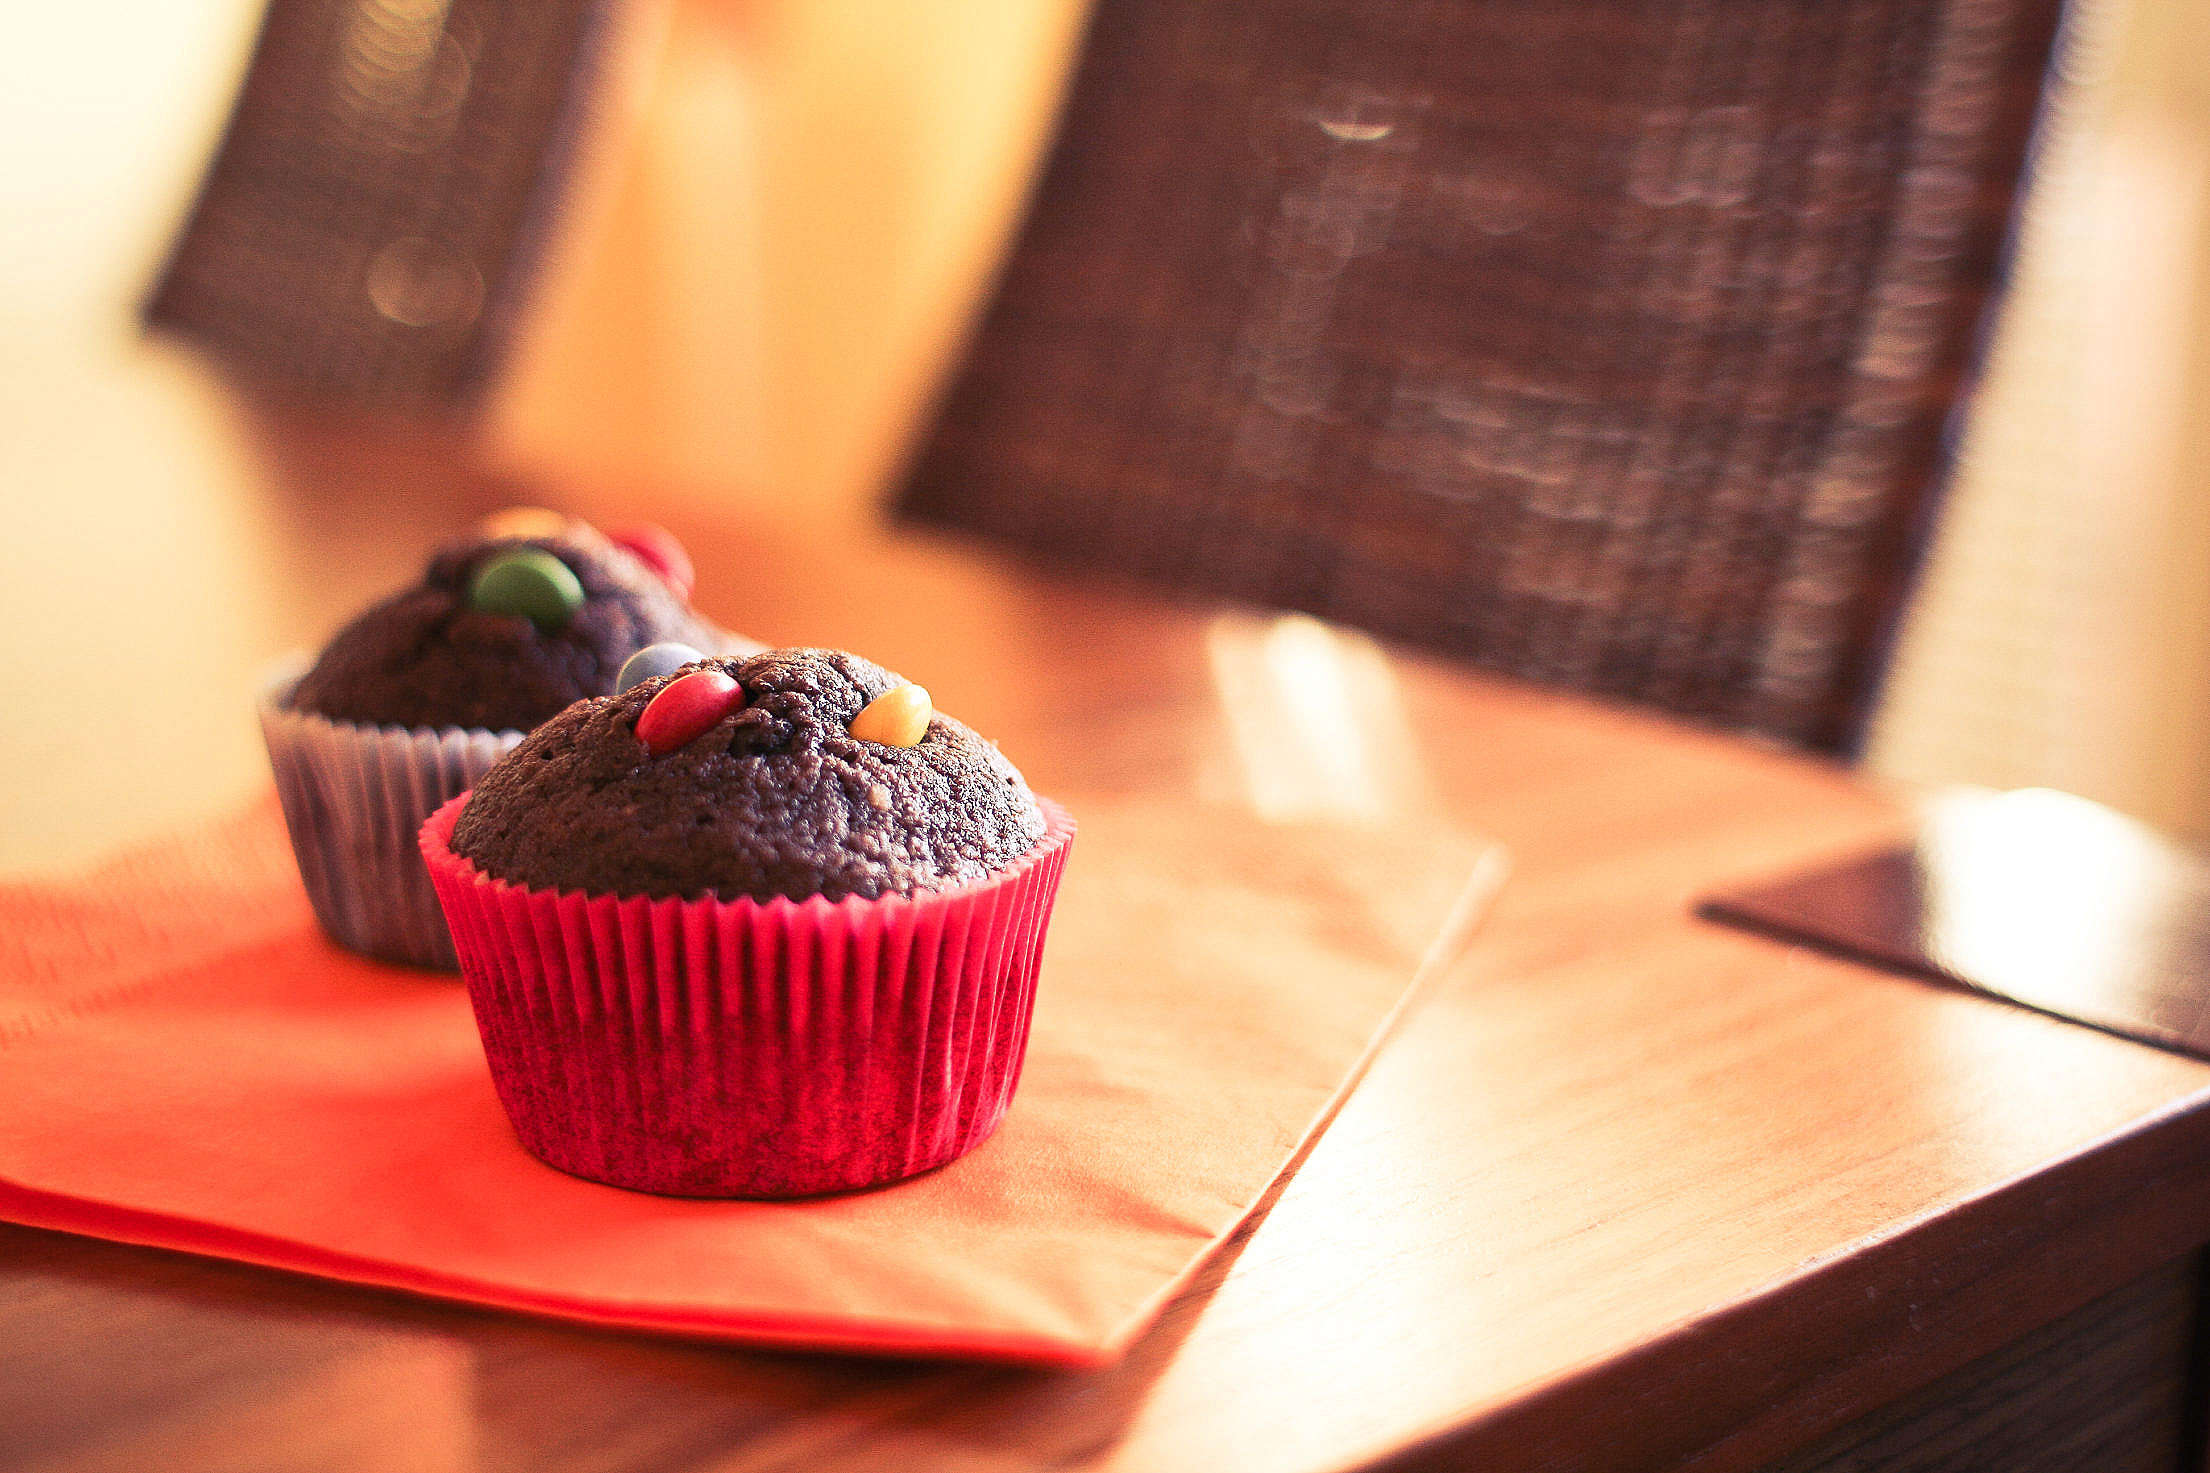 Two Delicious & Yummy Muffins Free Stock Photo